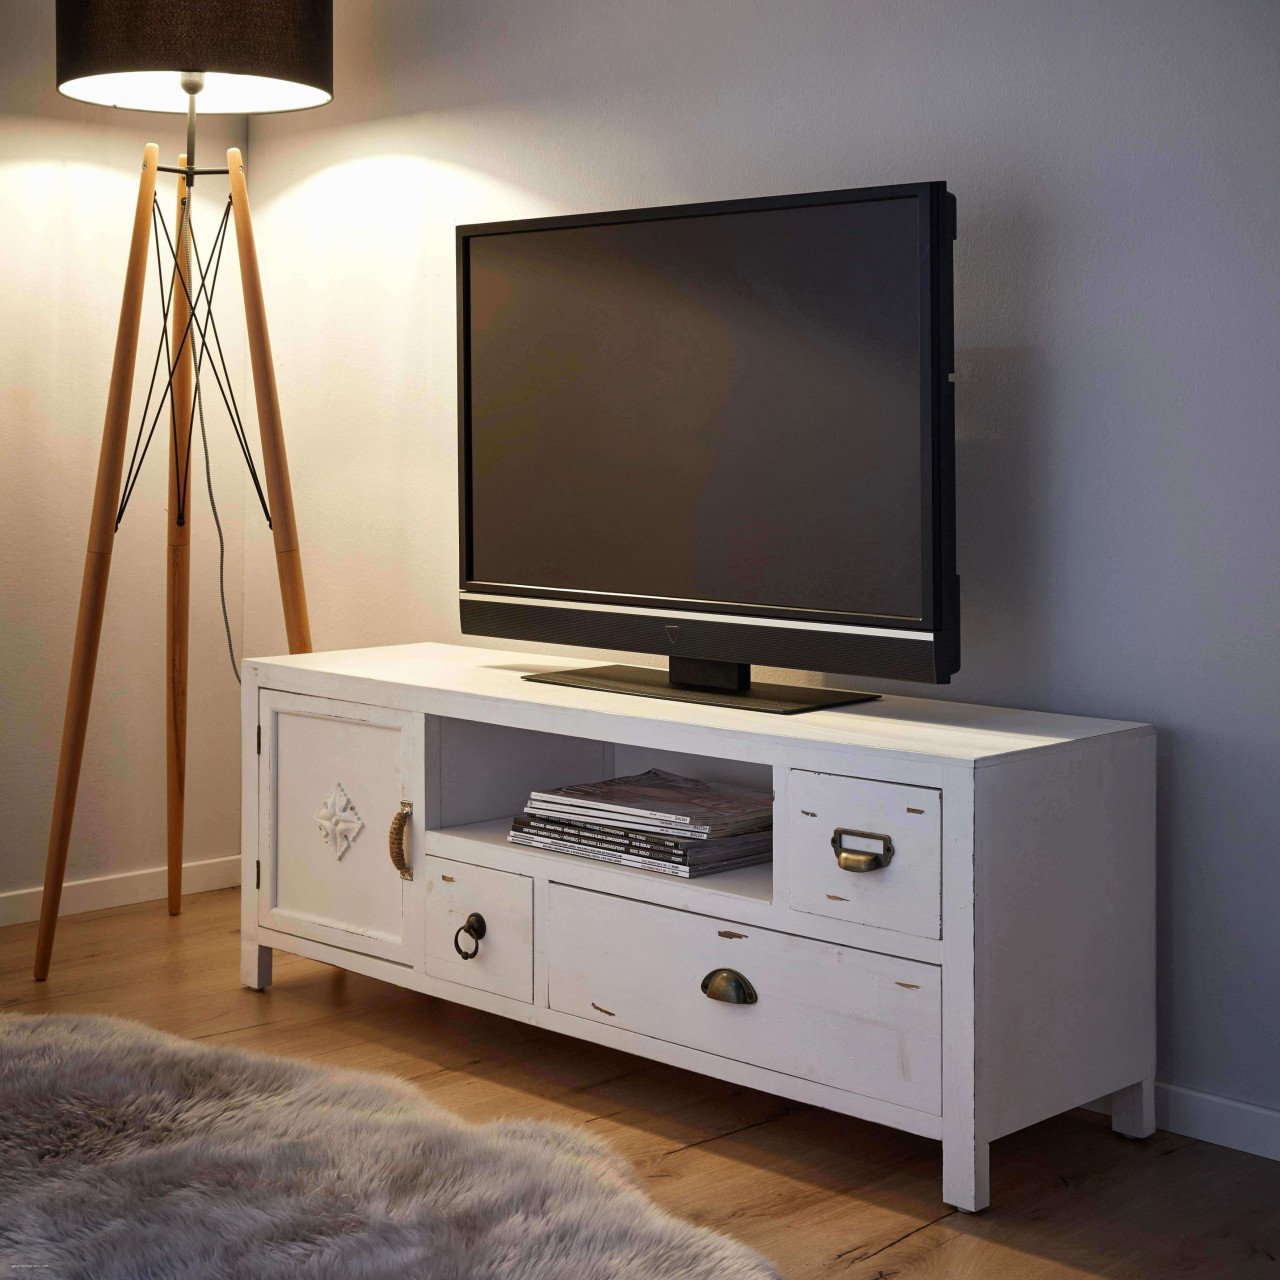 Tall Tv Stands for Bedroom New Bedroom Tv Stand — Procura Home Blog